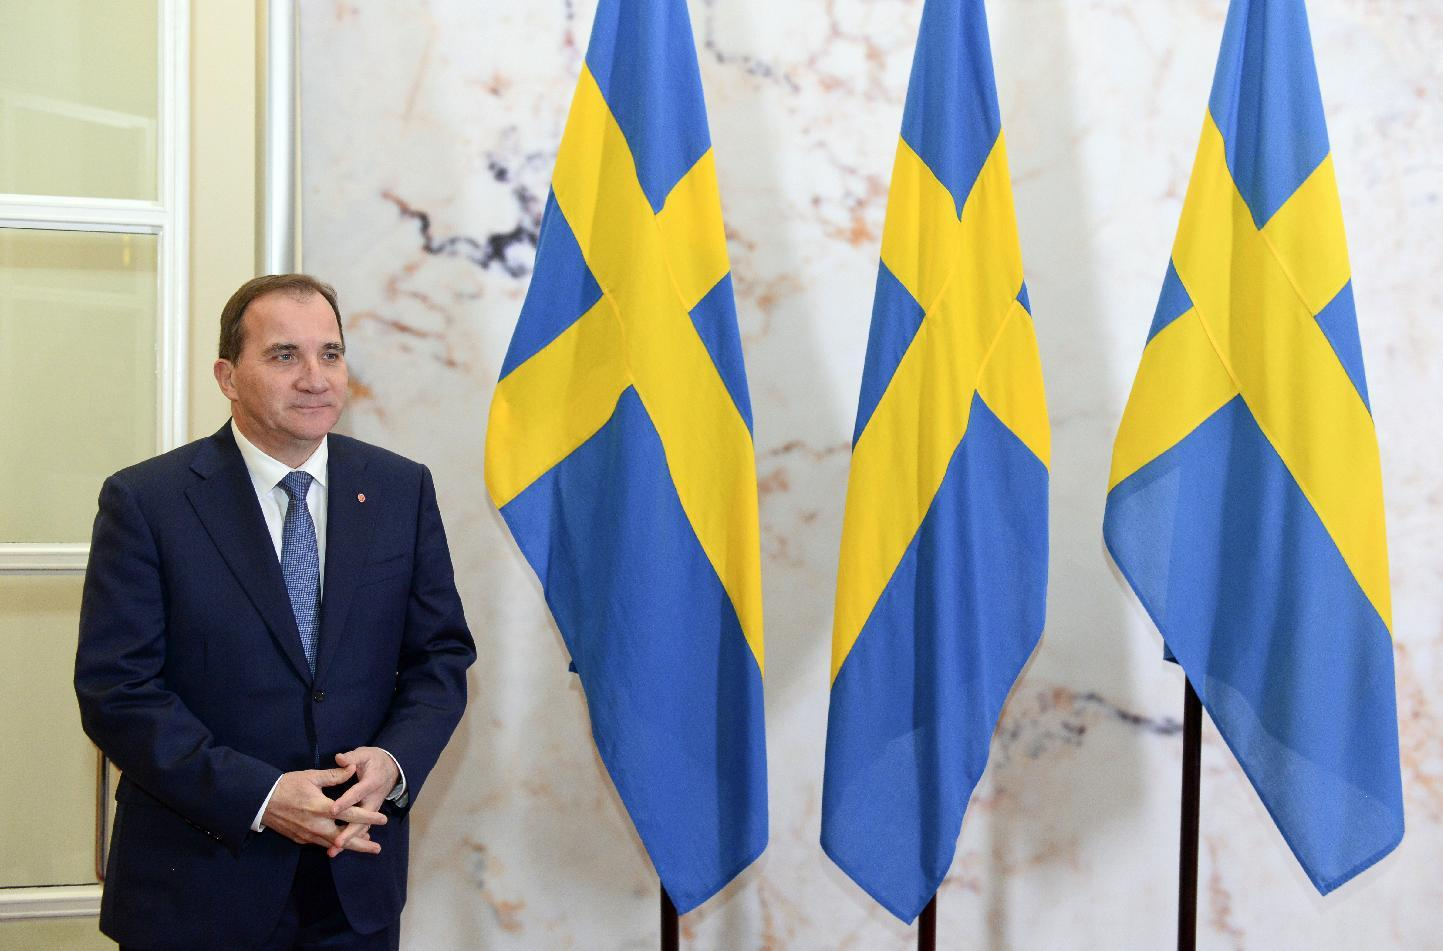 Swedish Prime Minister Stefan Loefven is pictured at the Rosenbad government office in Stockholm on October 27, 2014 (AFP Photo/Jonathan Nackstrand)